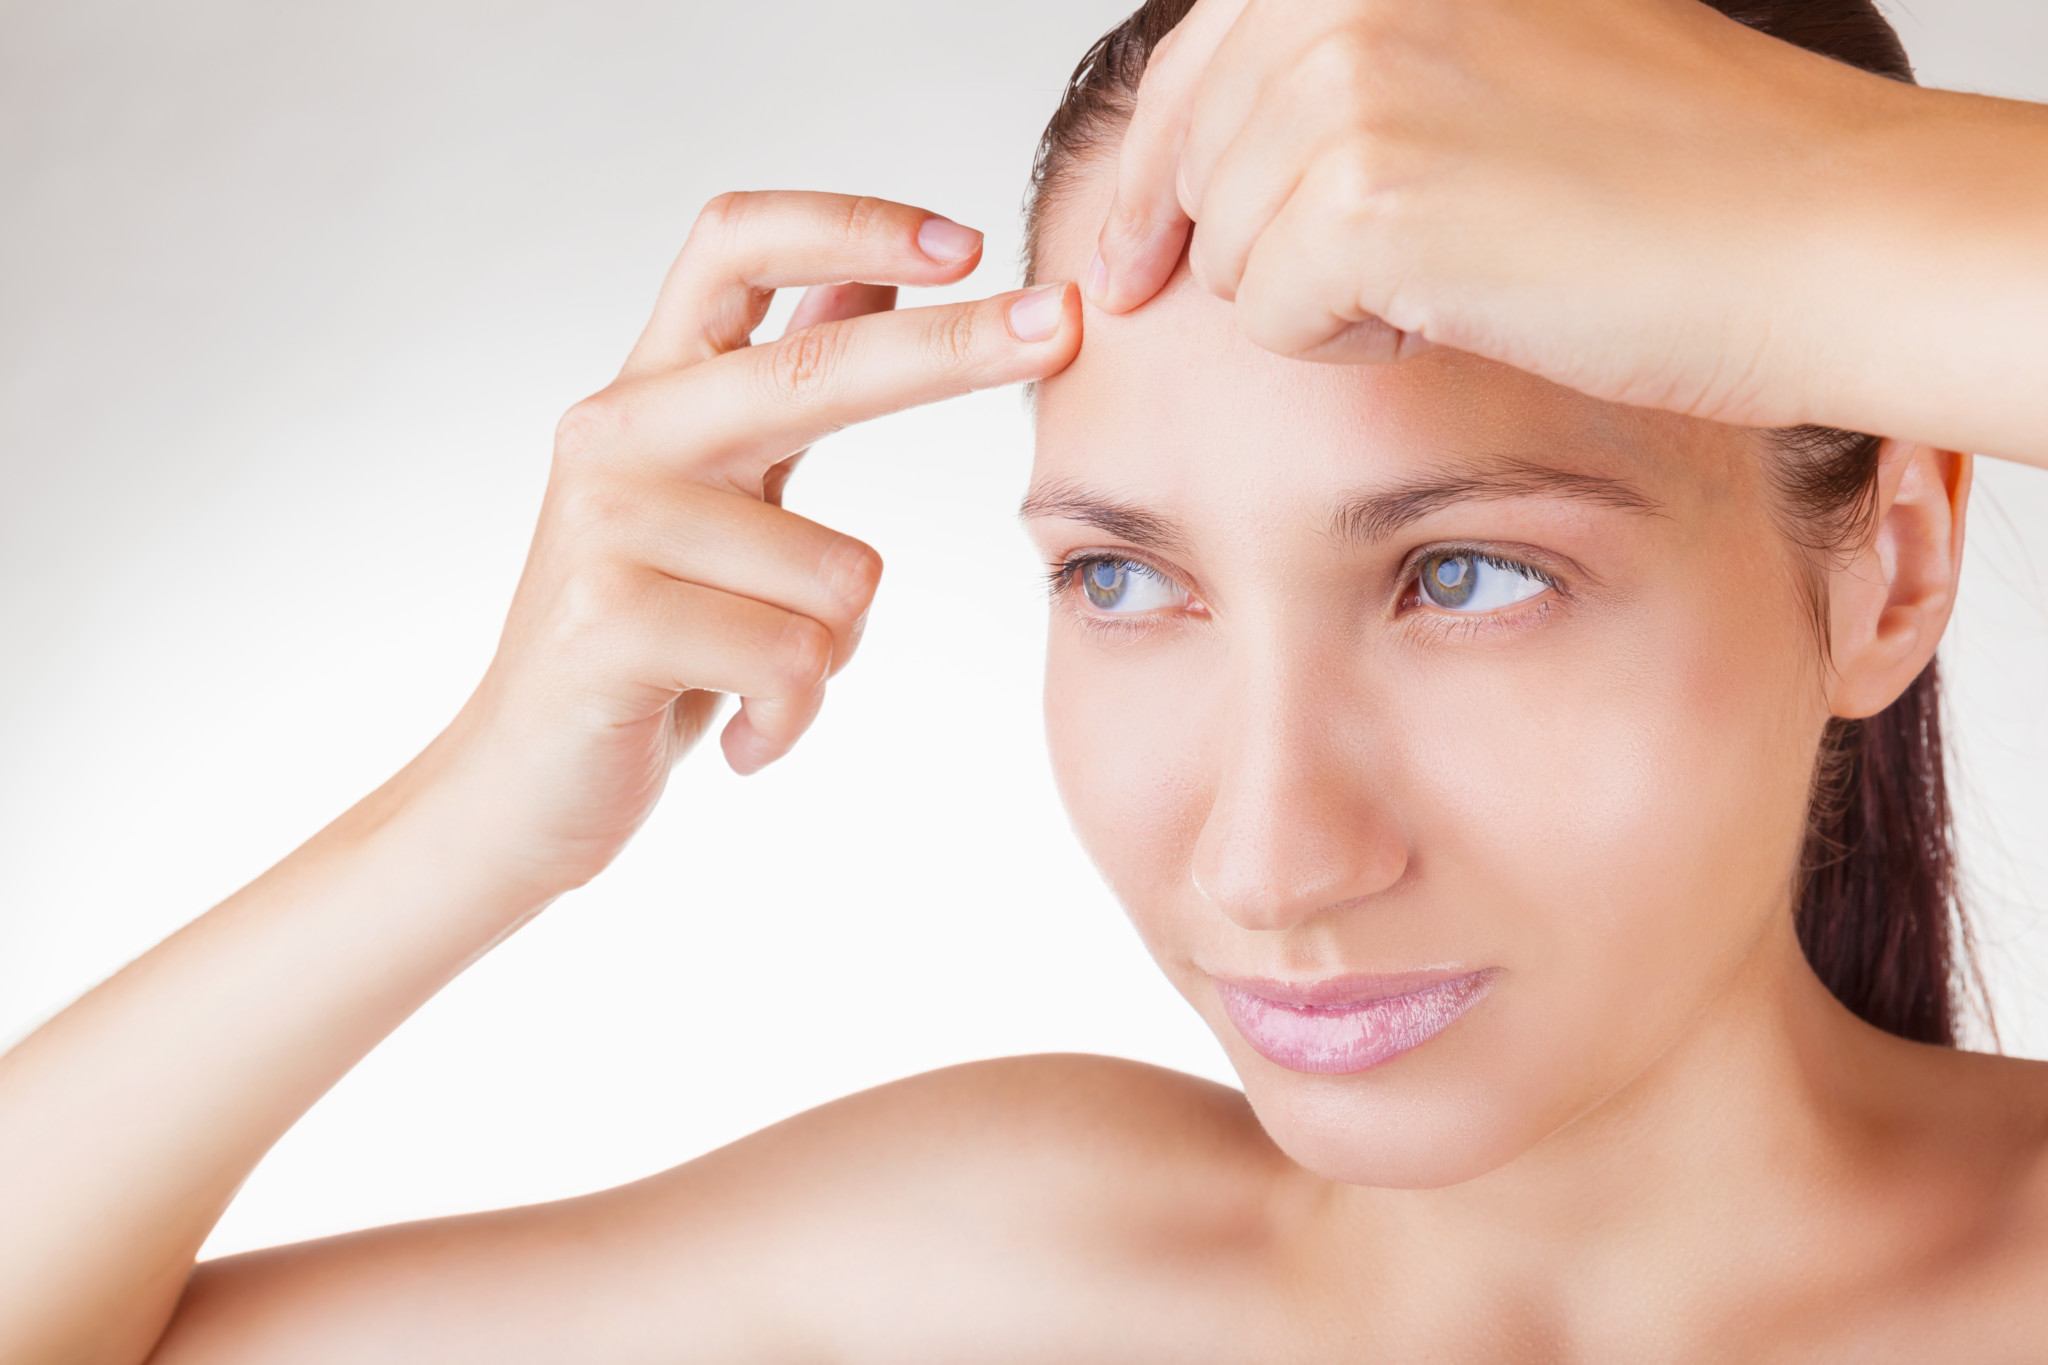 Young woman squeezing pimple on her forehead on white background